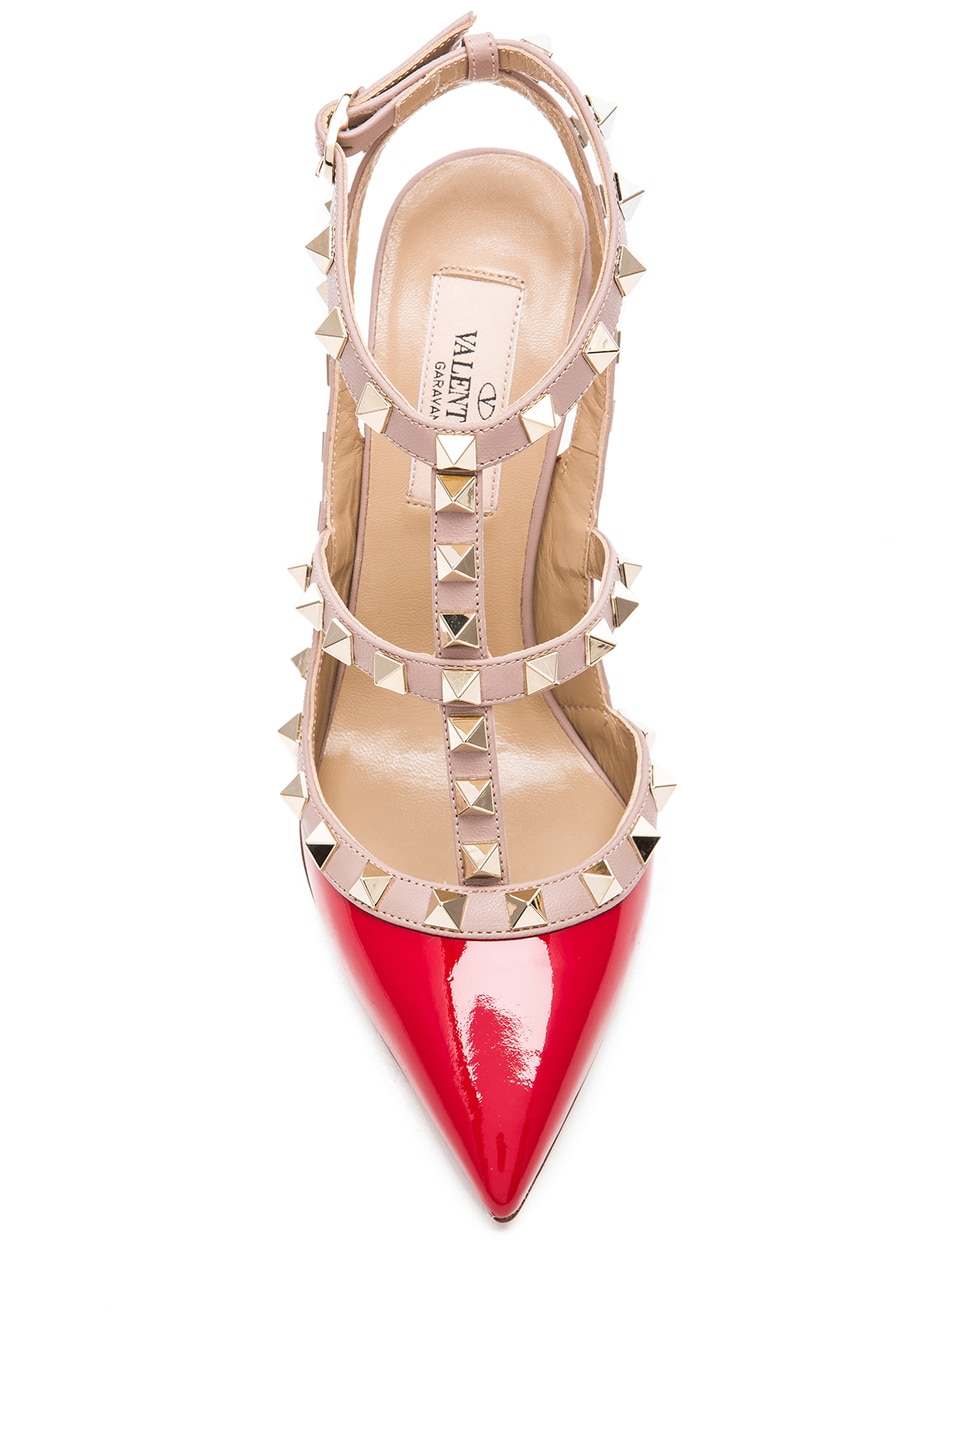 Image 4 of Valentino Rockstud Patent Leather Slingbacks T.100 in Rosso